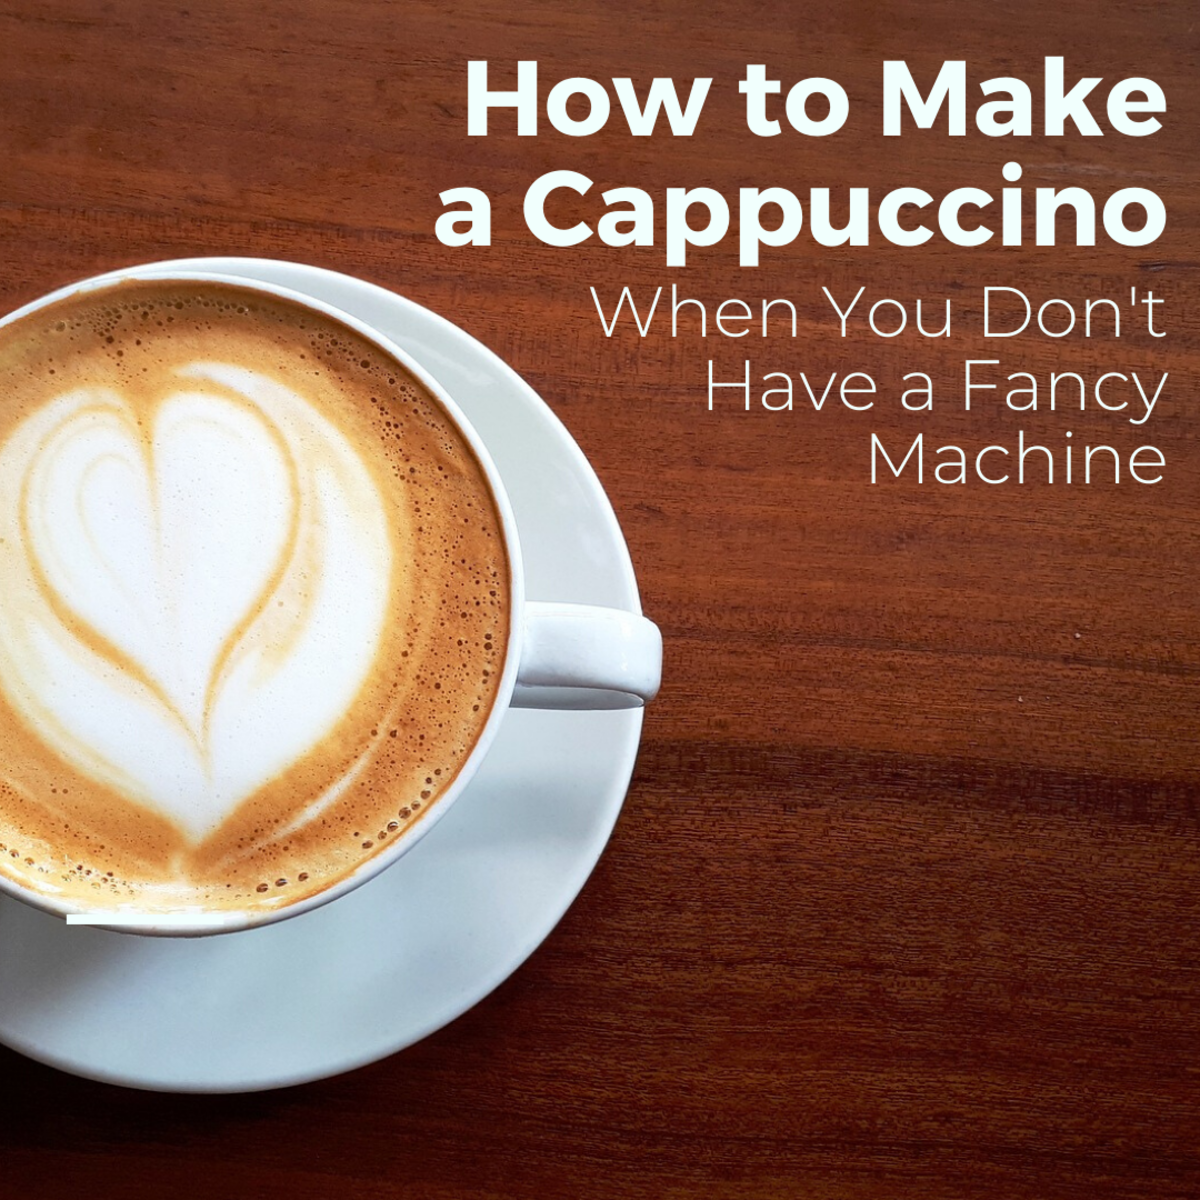 How to Make a Cappuccino (Without Using an Espresso Machine)